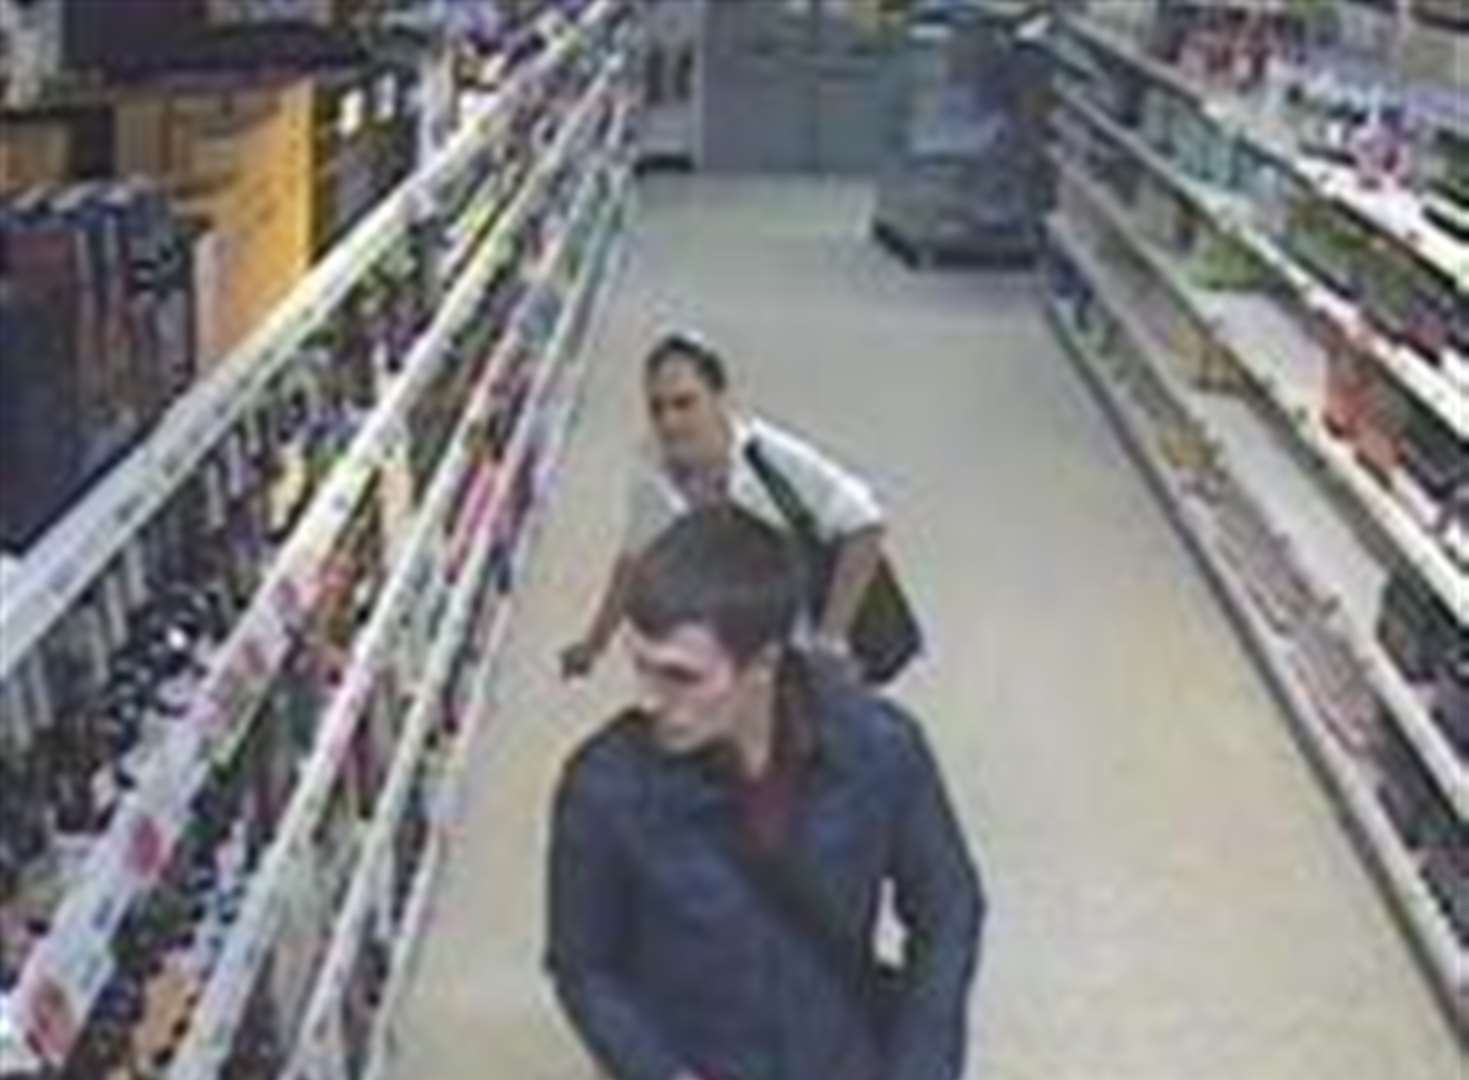 Thousands of pounds of booze swiped in supermarket raids